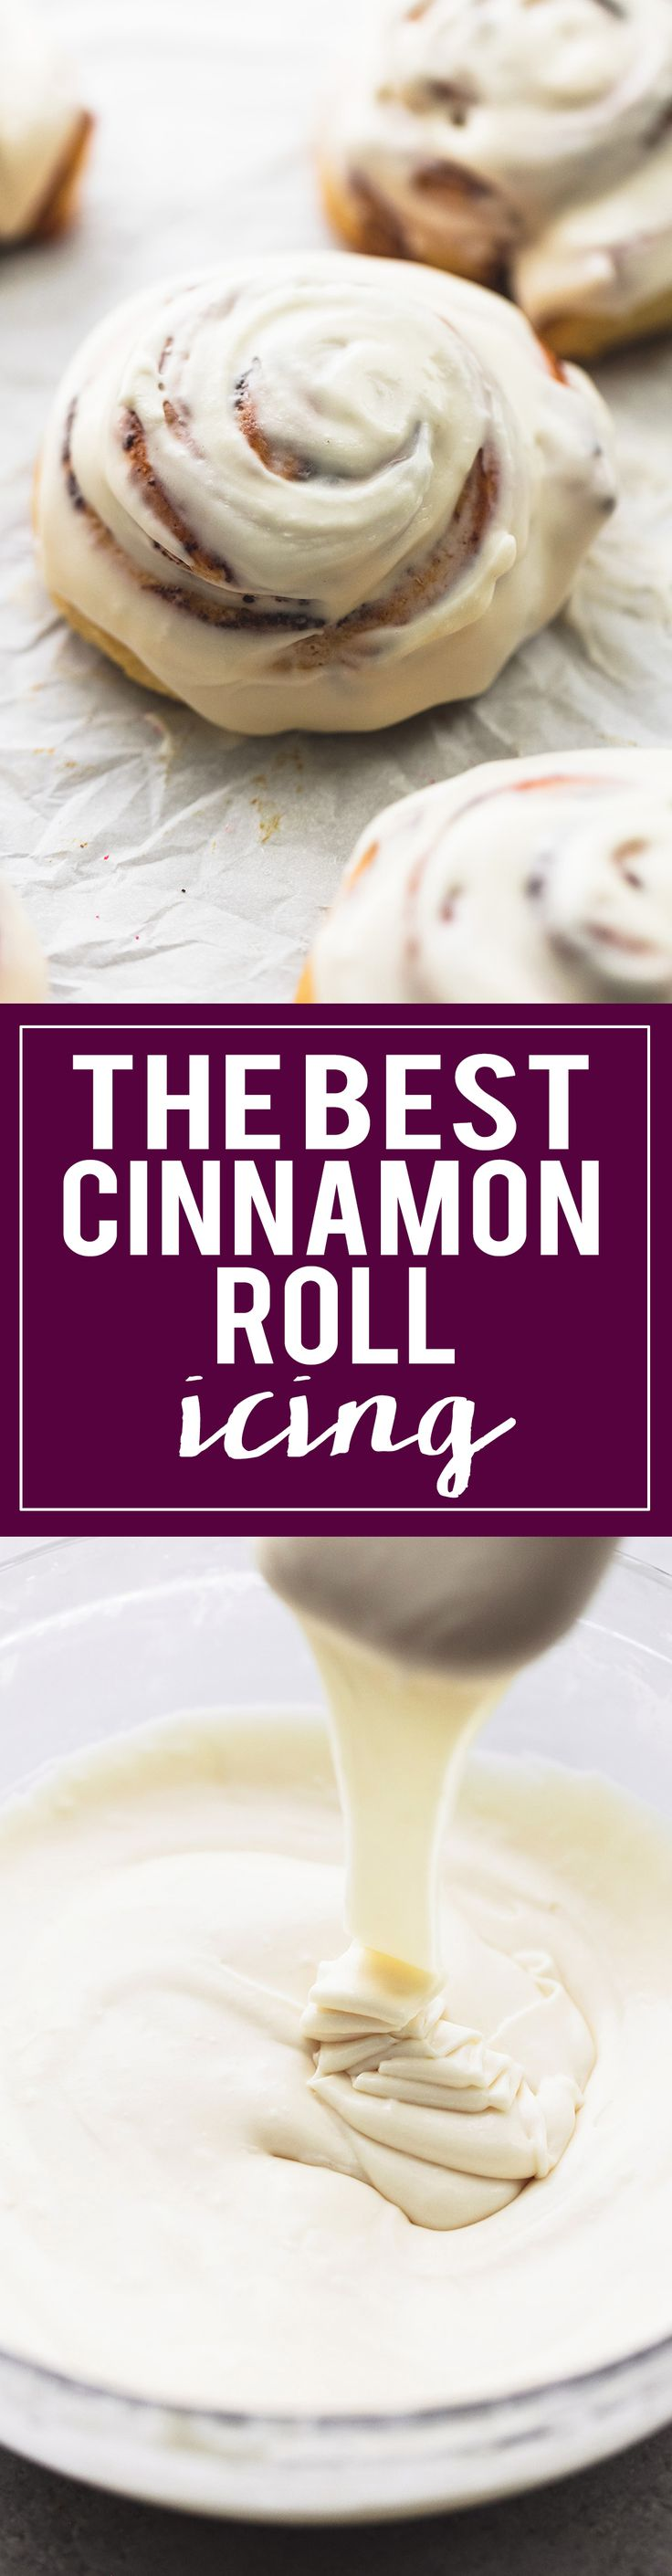 The BEST Cinnamon Roll Icing ever made in 10 minutes with just 5 ingredients and one key step that makes it BETTER than cinnabon!   lecremedelacrumb.com